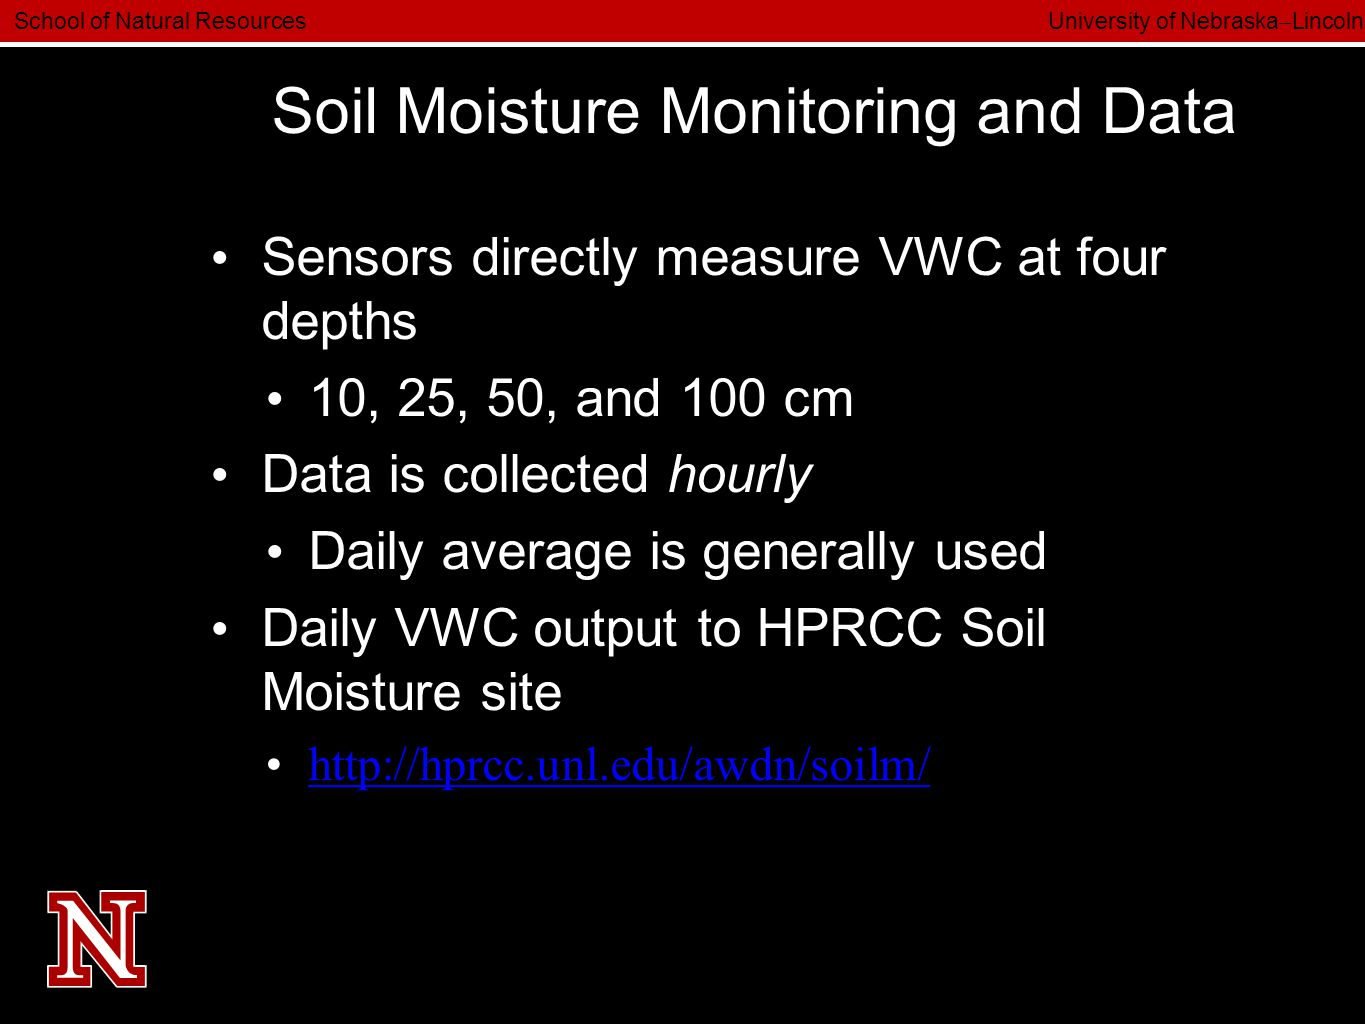 School of Natural Resources University of Nebraska  Lincoln Soil Moisture Monitoring and Data Sensors directly measure VWC at four depths 10, 25, 50, and 100 cm Data is collected hourly Daily average is generally used Daily VWC output to HPRCC Soil Moisture site http://hprcc.unl.edu/awdn/soilm/